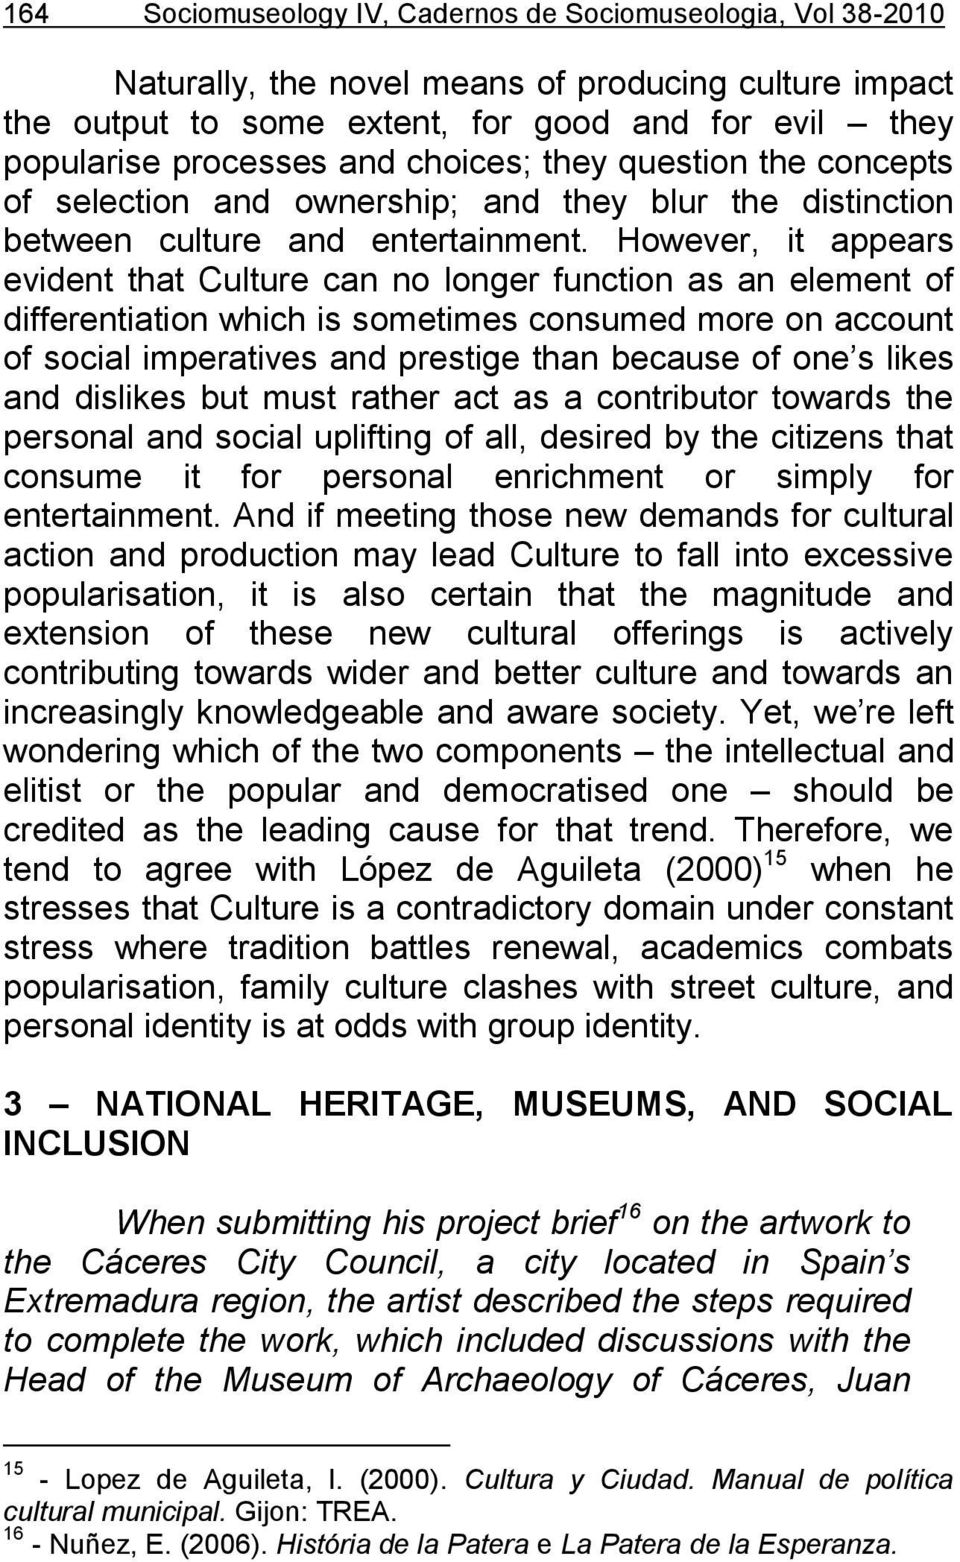 However, it appears evident that Culture can no longer function as an element of differentiation which is sometimes consumed more on account of social imperatives and prestige than because of one s